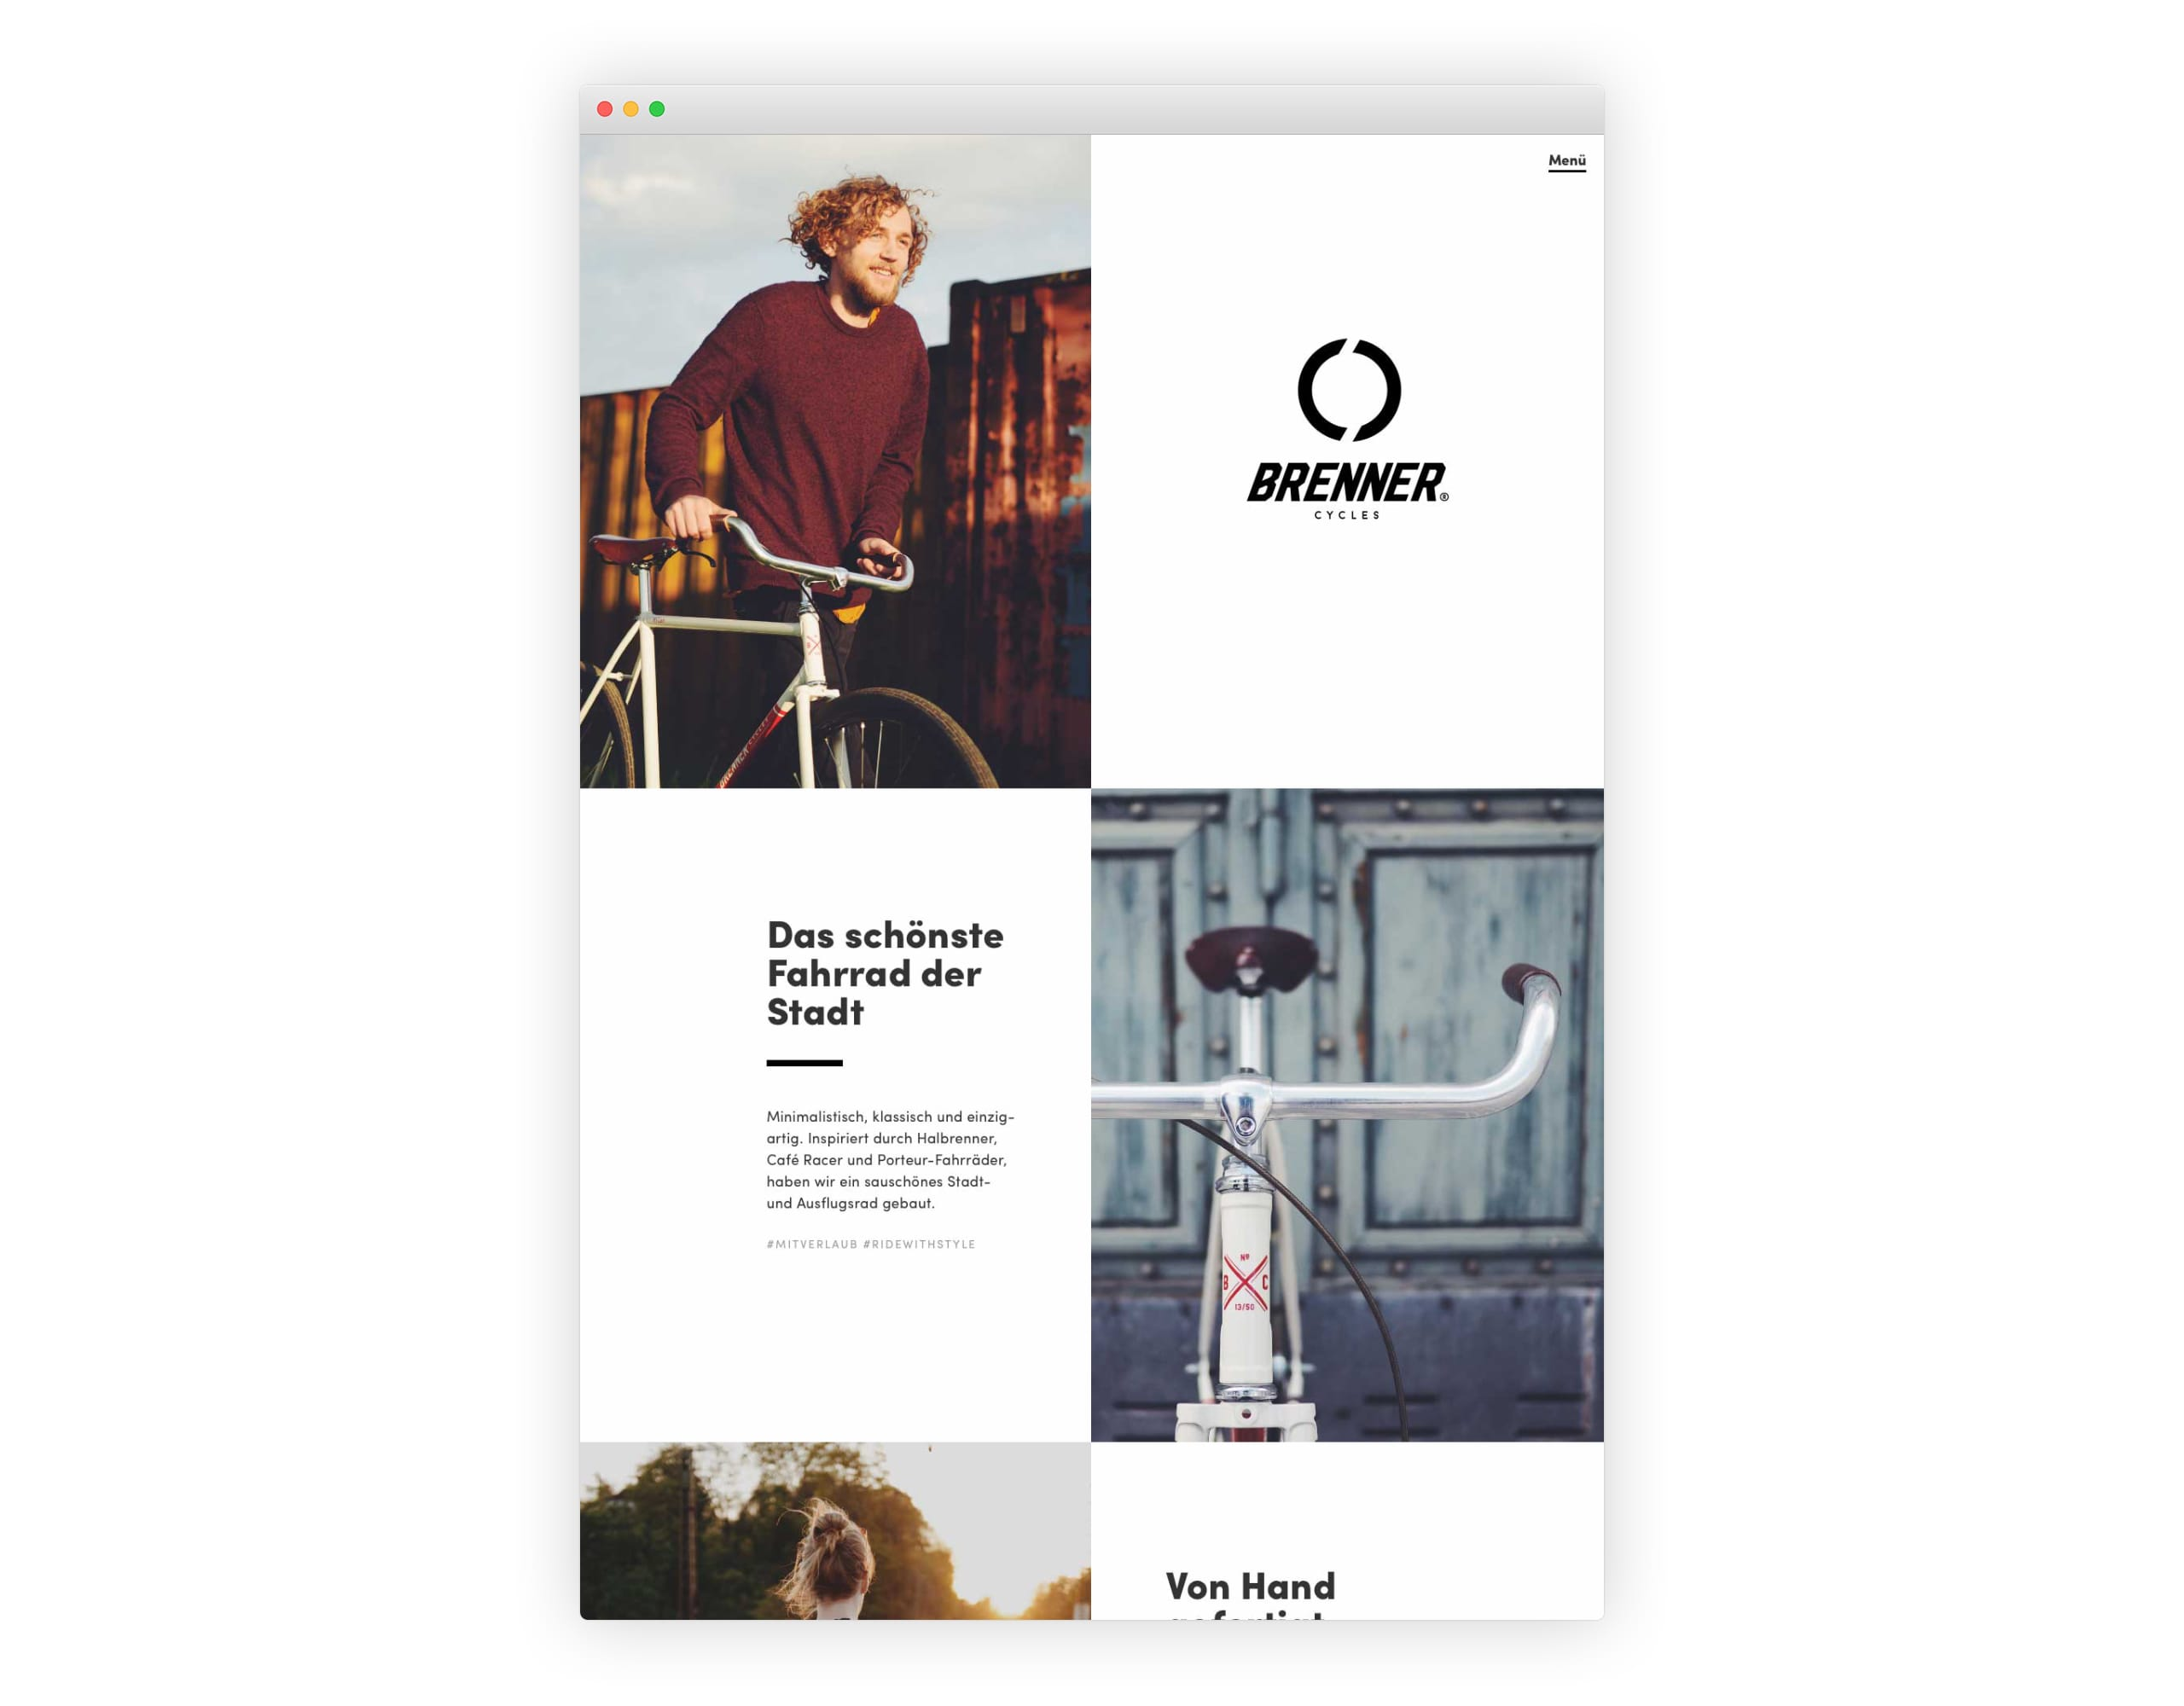 Website with good whitespace